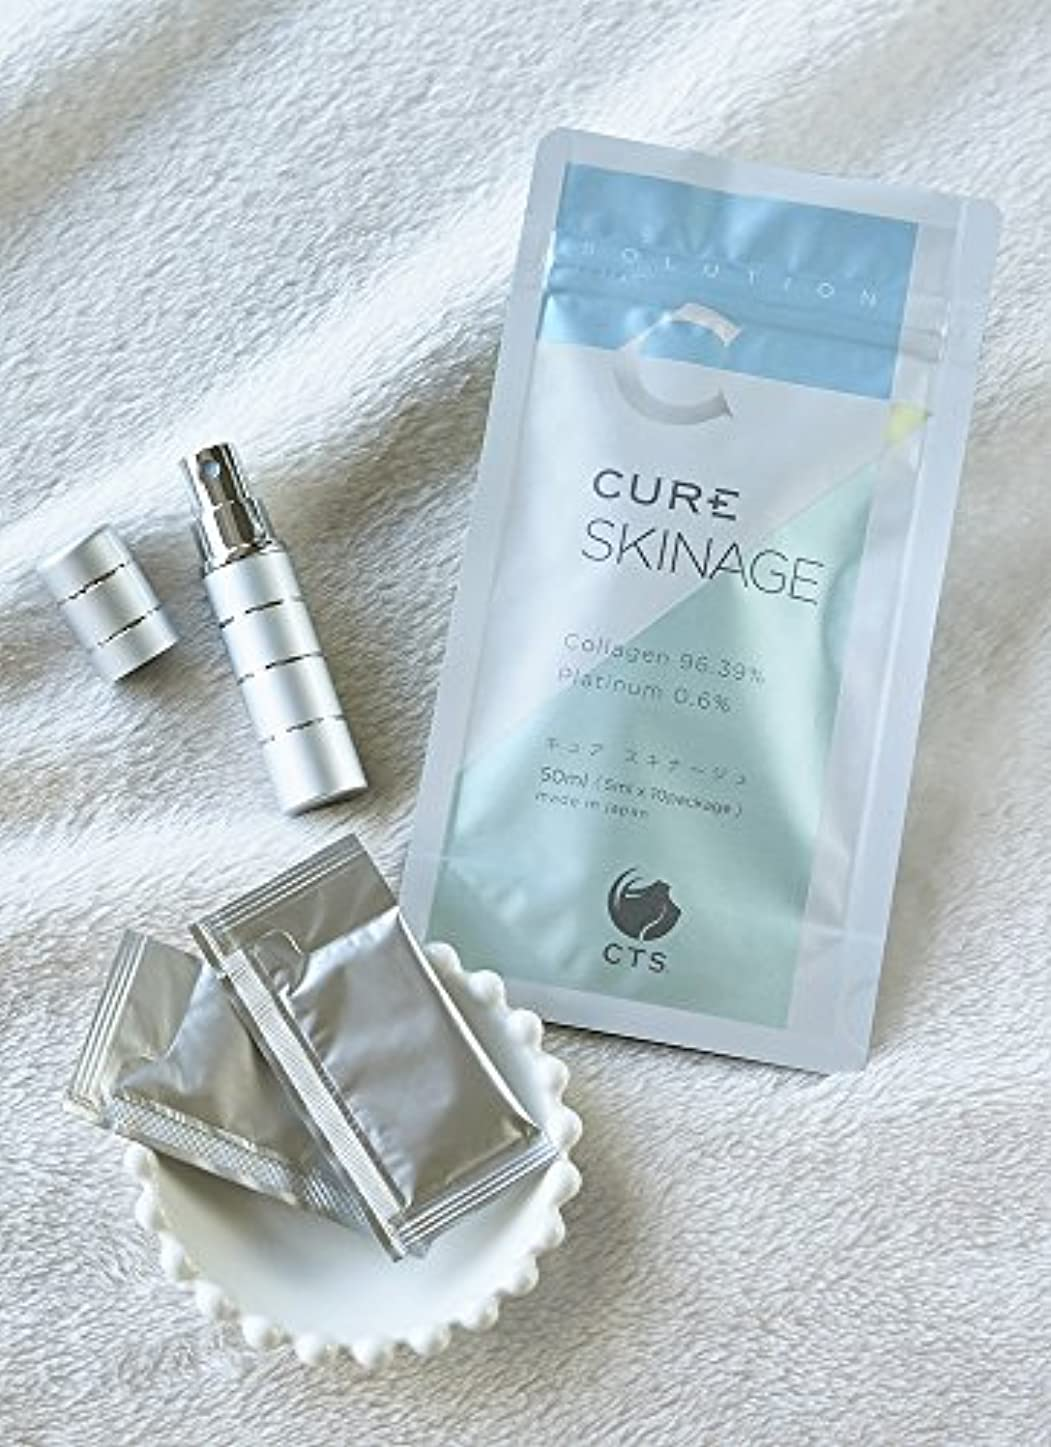 CURE SKINAGE【96.99%有効成分】美容液 防腐剤無添加 アトマイザー付き